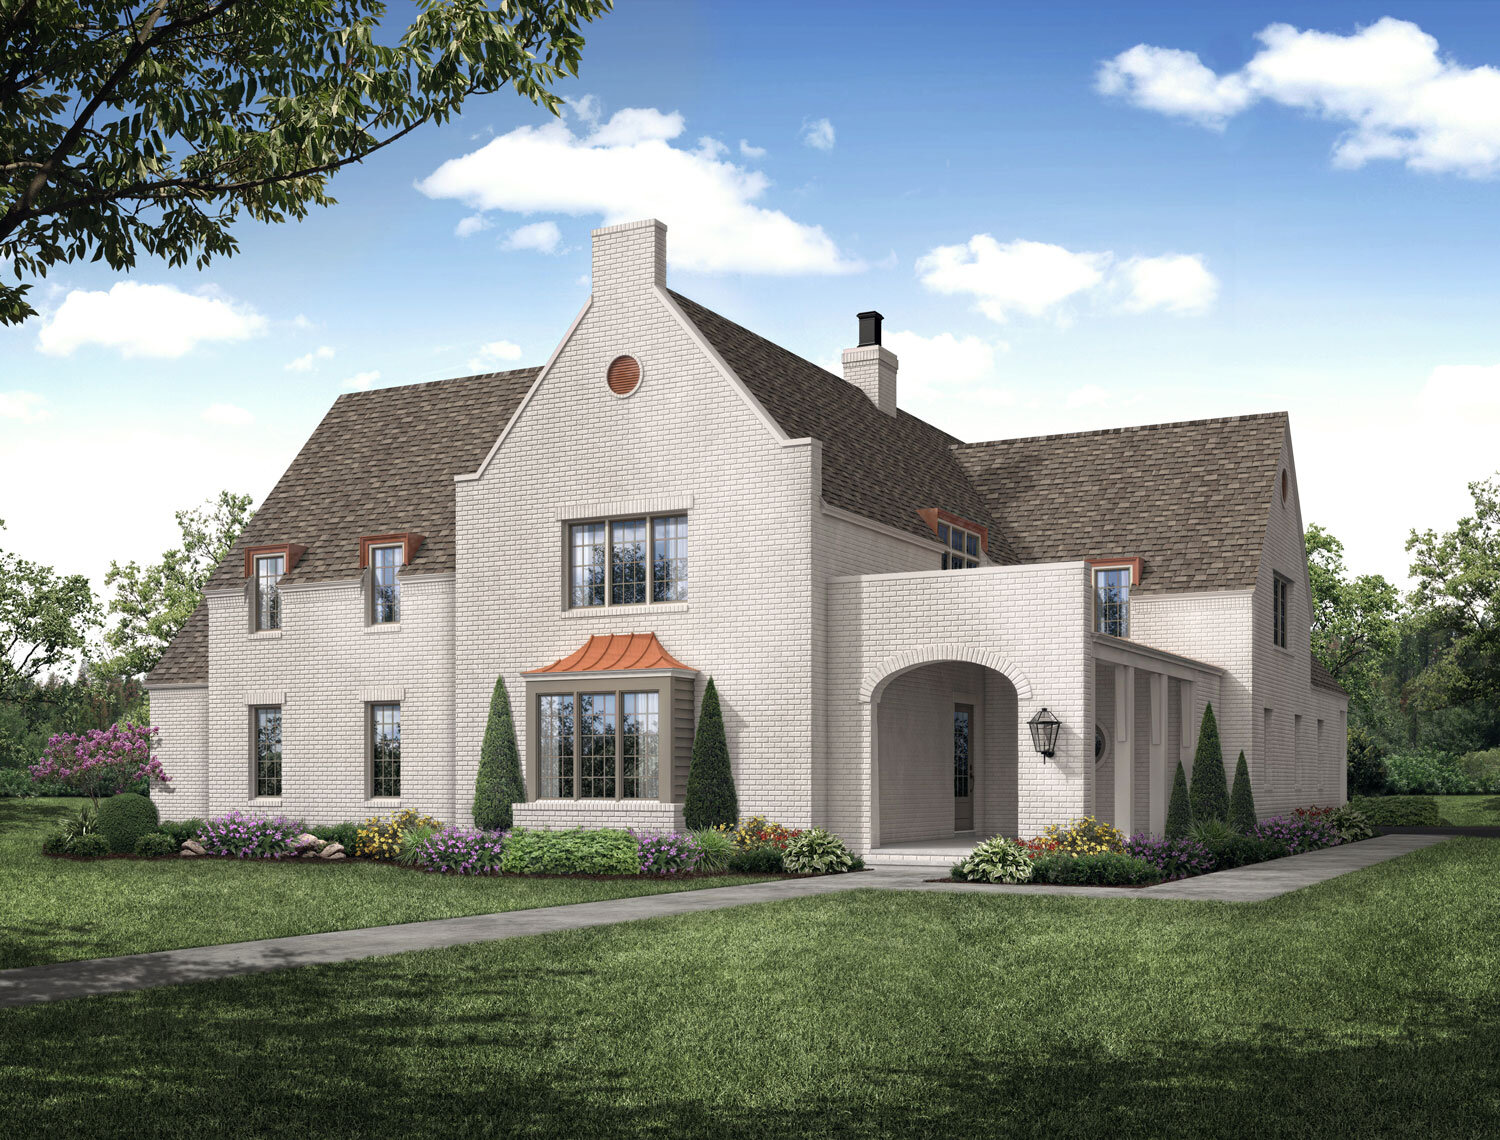 Rendering of The Longtown Company Vesta Show House; Architect: David Anderson